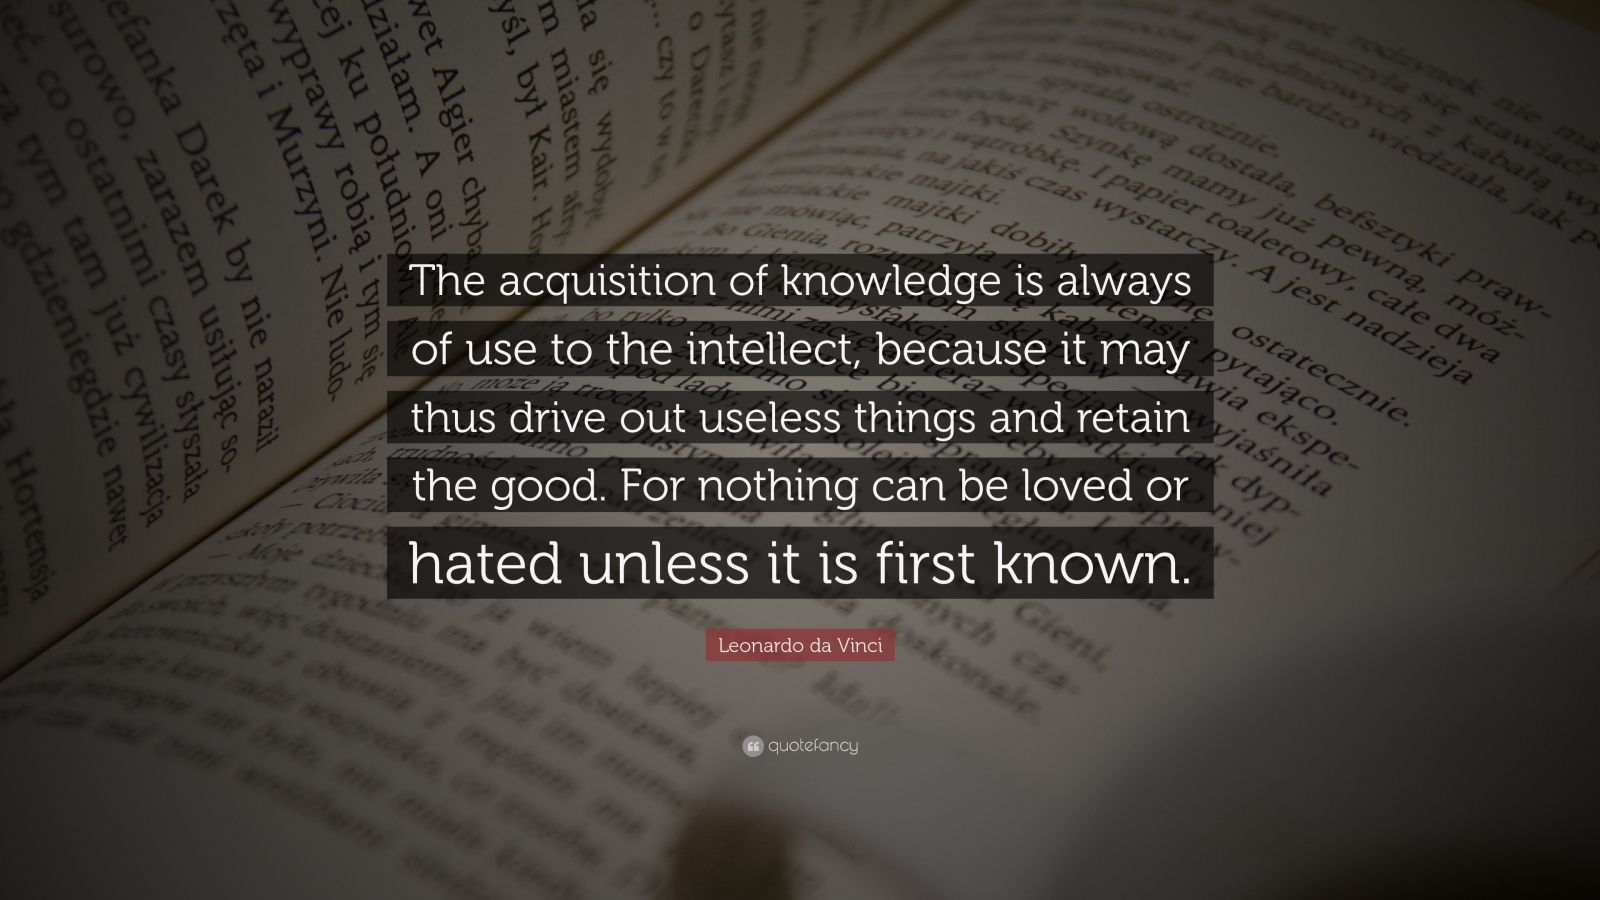 """Leonardo da Vinci Quote: """"The acquisition of knowledge is always of use to the intellect, because it may thus drive out useless things and retain the good.  For nothing can be loved or hated unless it is first known."""""""